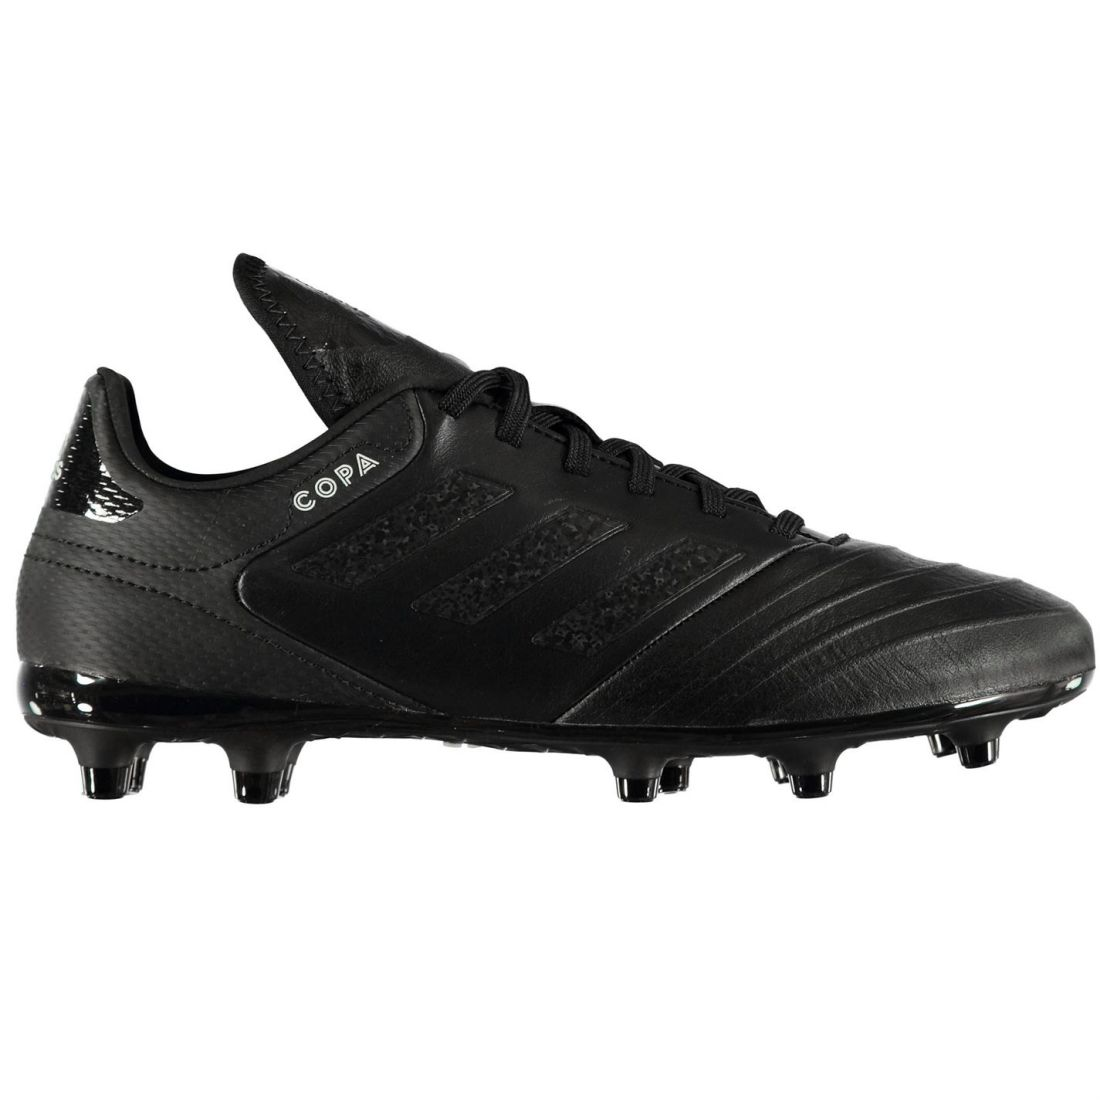 Adidas Mens Copa 18.3 FG Football Stiefel Firm Ground Lace Up Studs